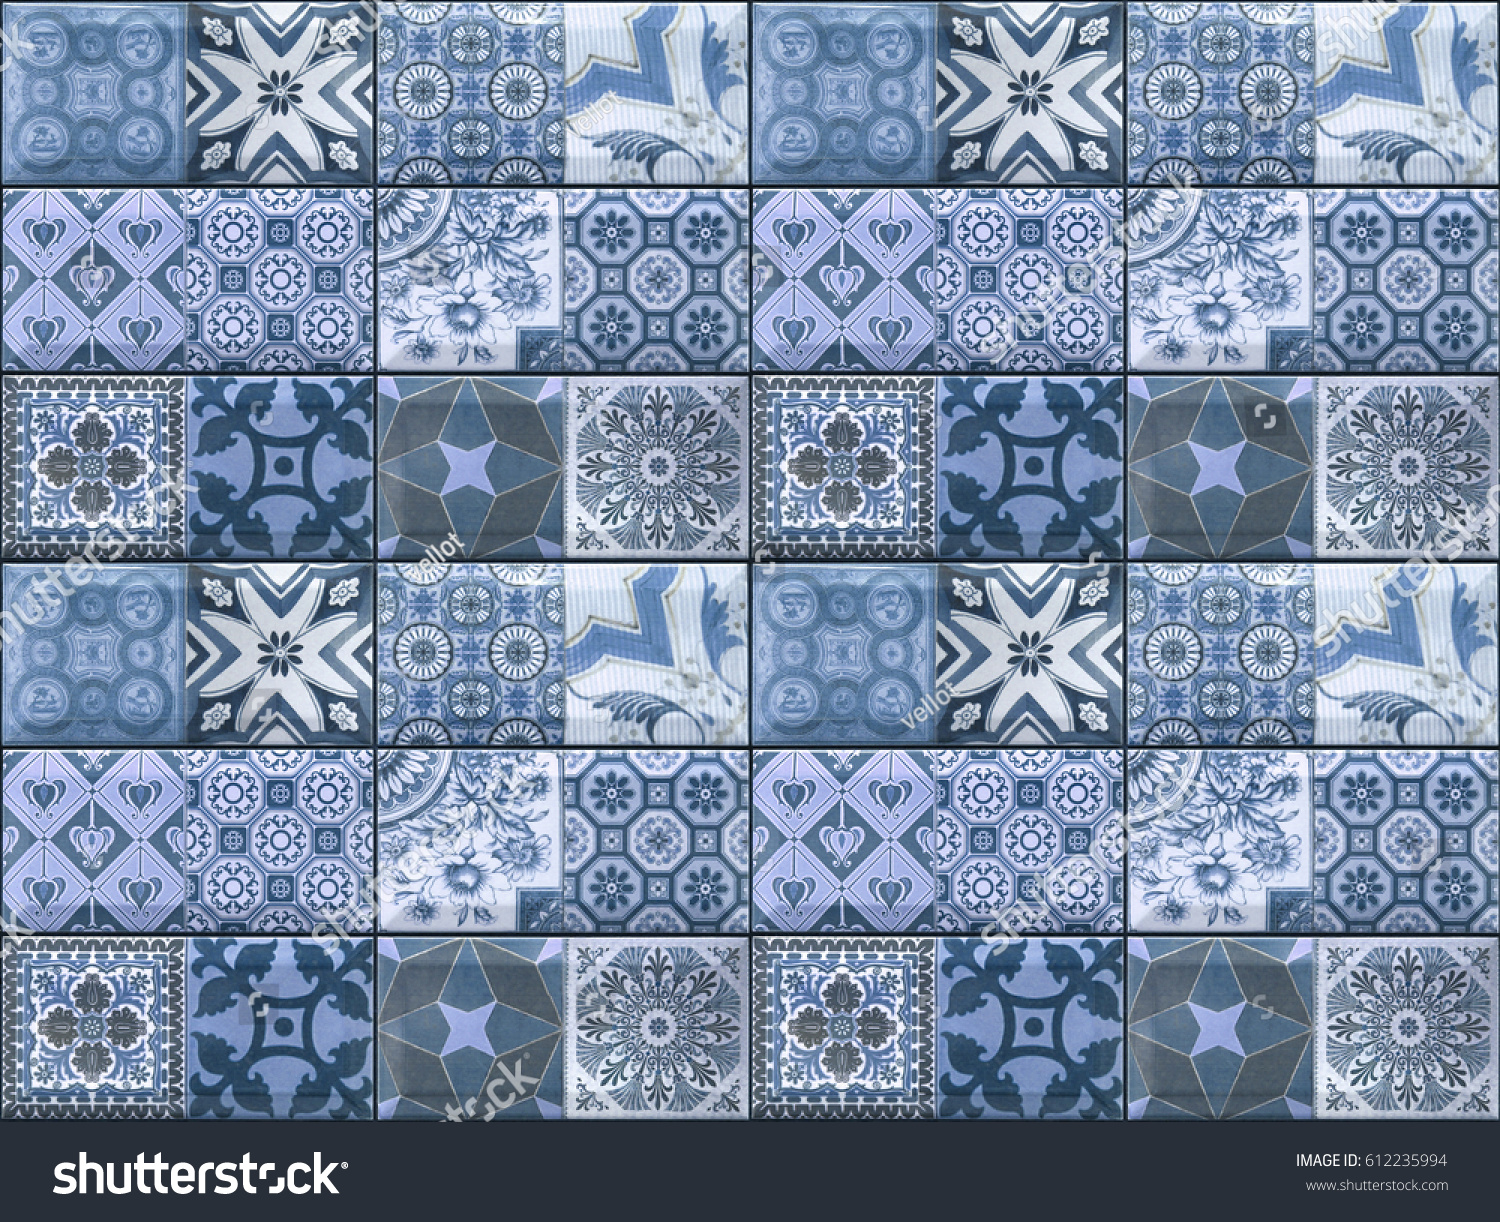 Seamless Wall Stone Tile Drawings Giant Stock Photo (Download Now ...